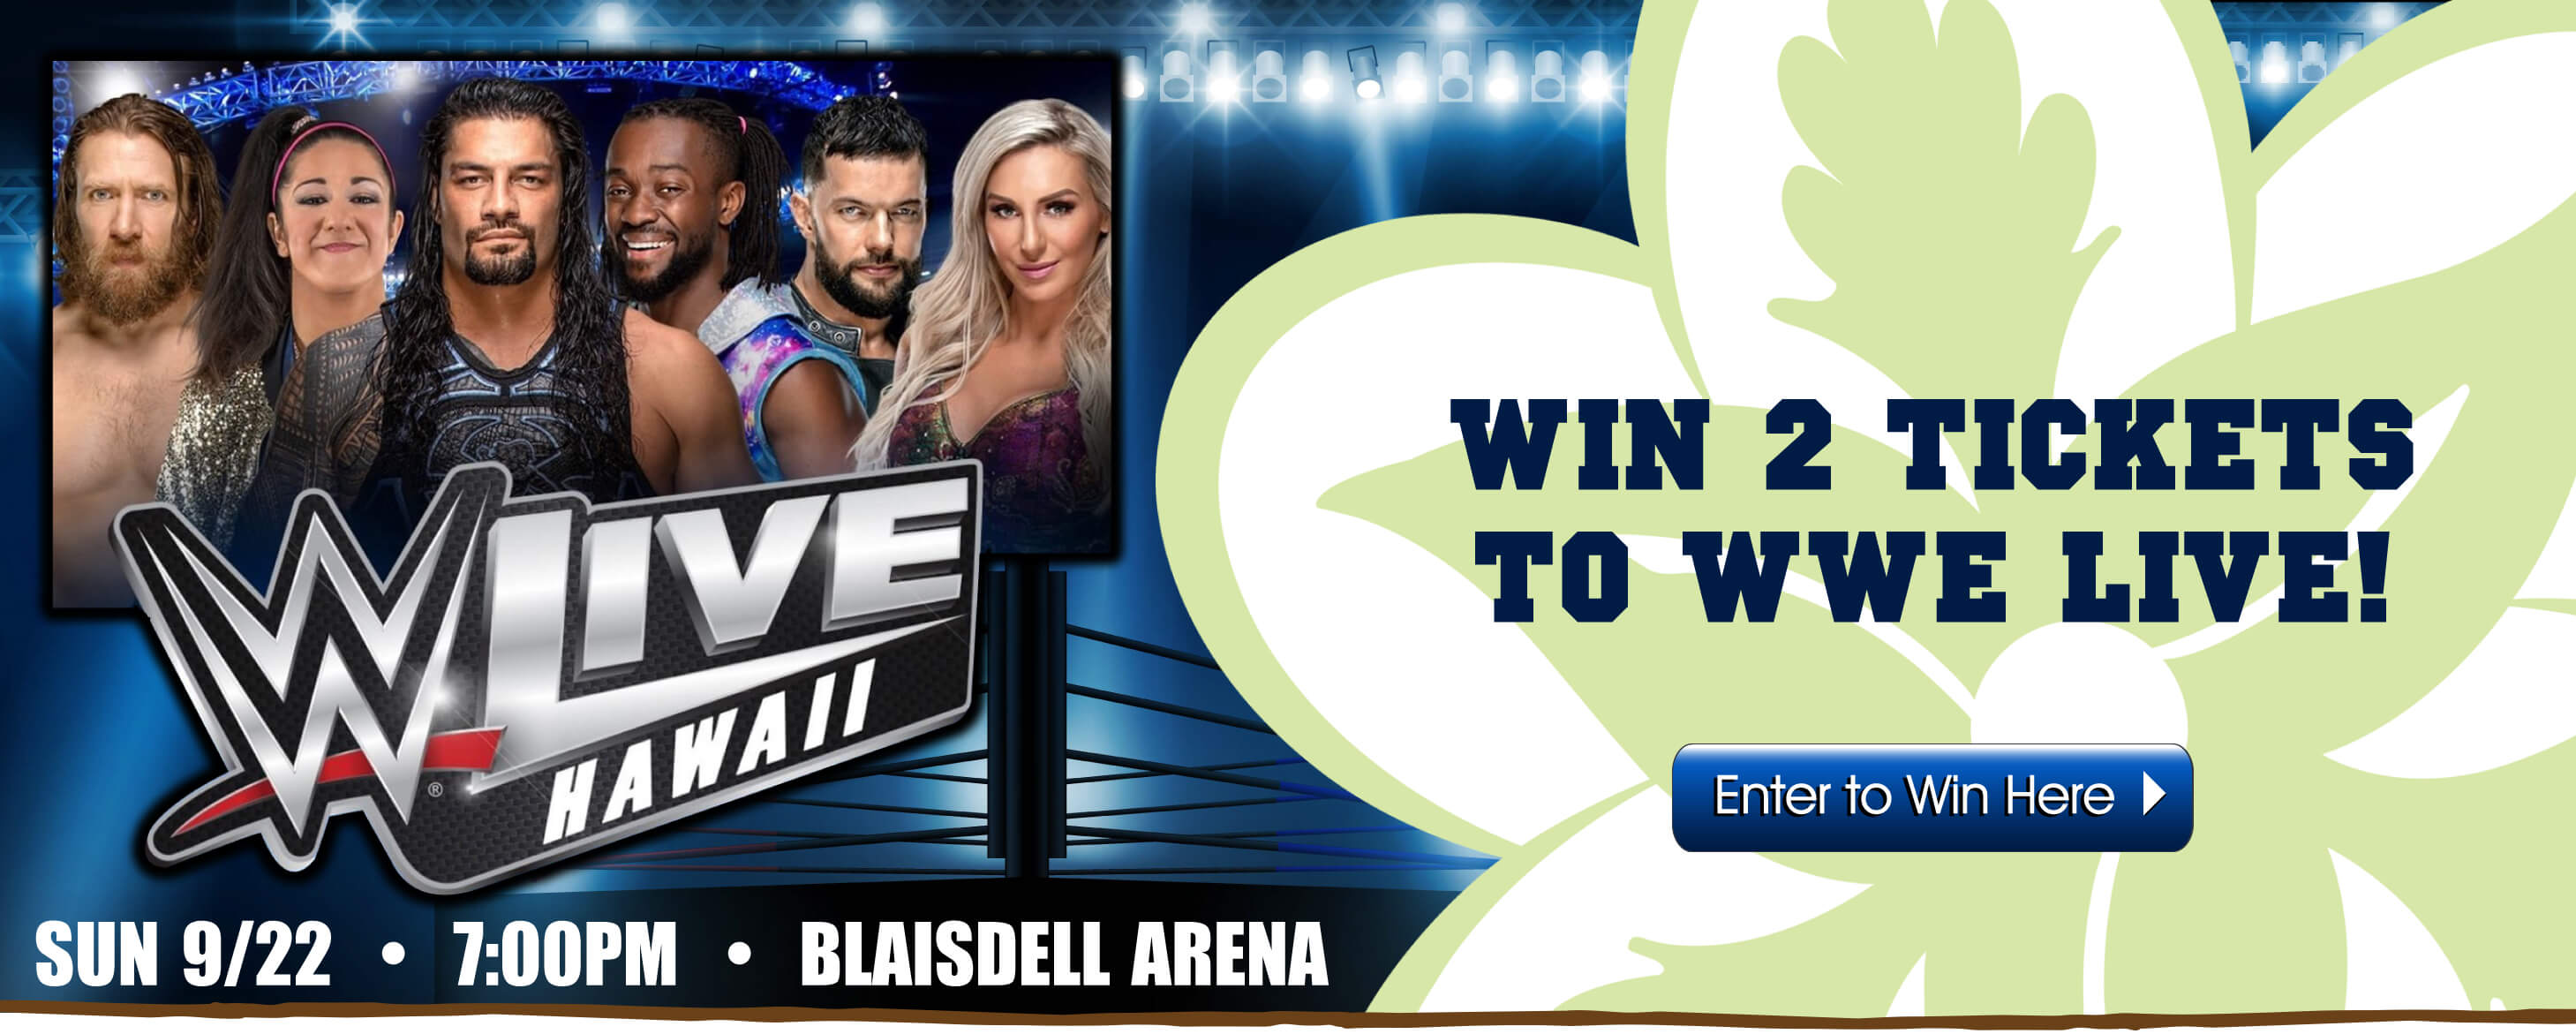 Enter to win 2 tickets to see WWE live in Hawaii at the Blaisdell Arena on Sunday, 9/22.